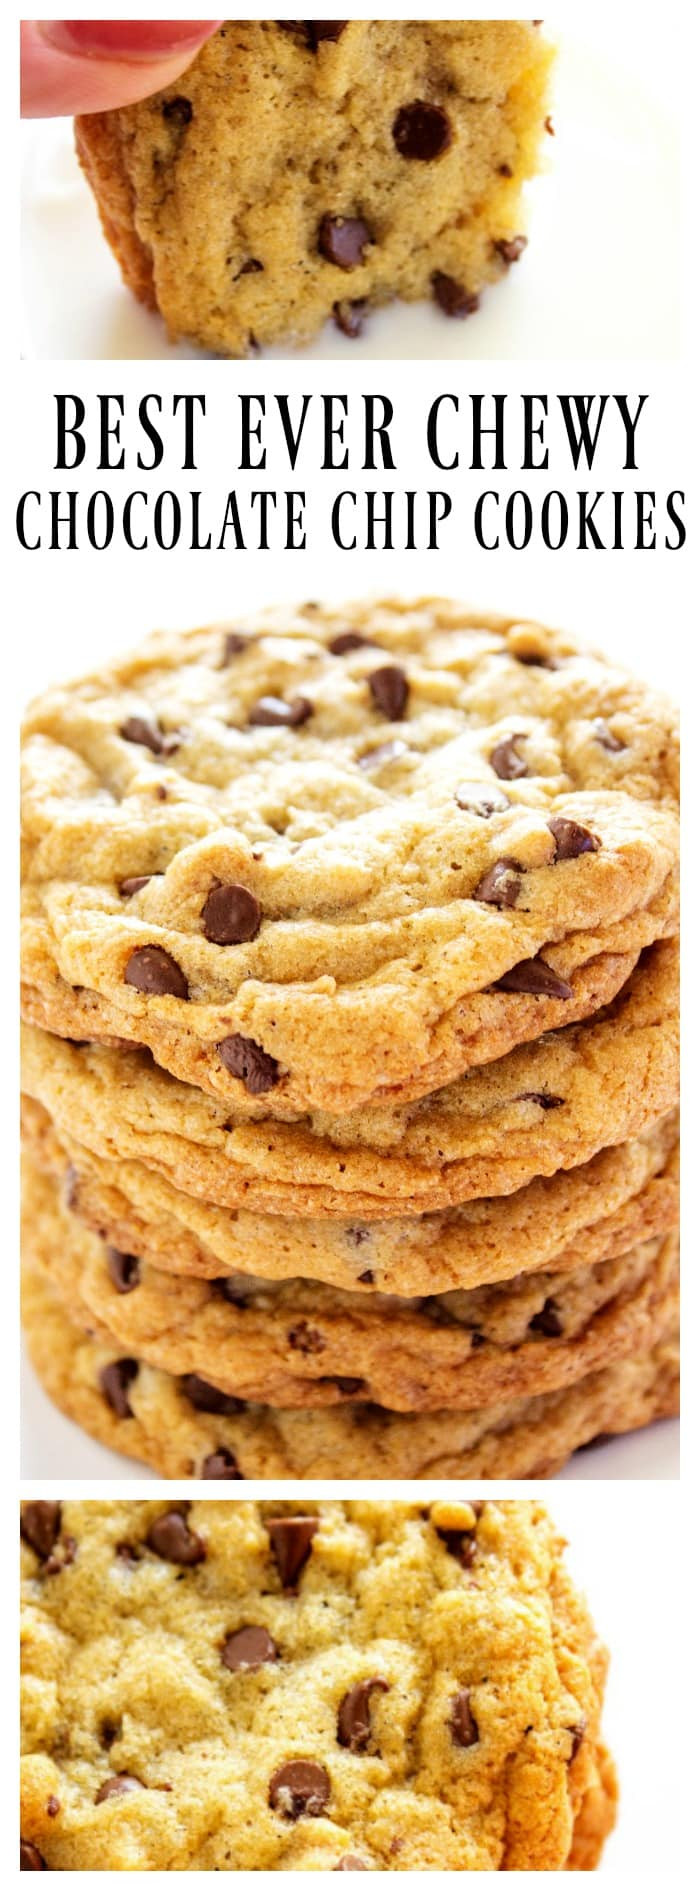 Best Chewy Chocolate Chip Cookies  Best Ever Chewy Chocolate Chip Cookies A Dash of Sanity